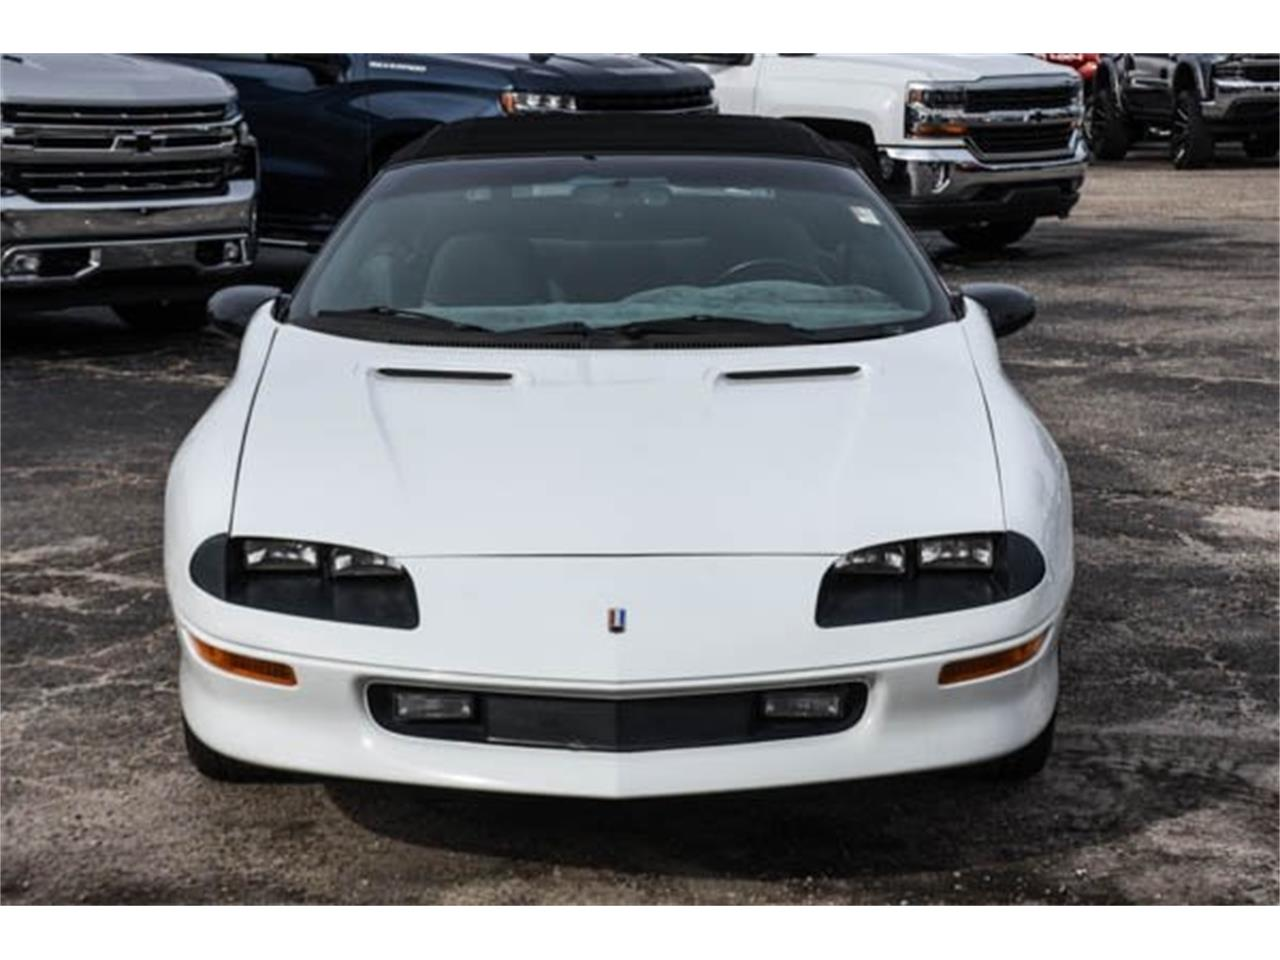 1994 Chevrolet Camaro (CC-1310754) for sale in Little River, South Carolina